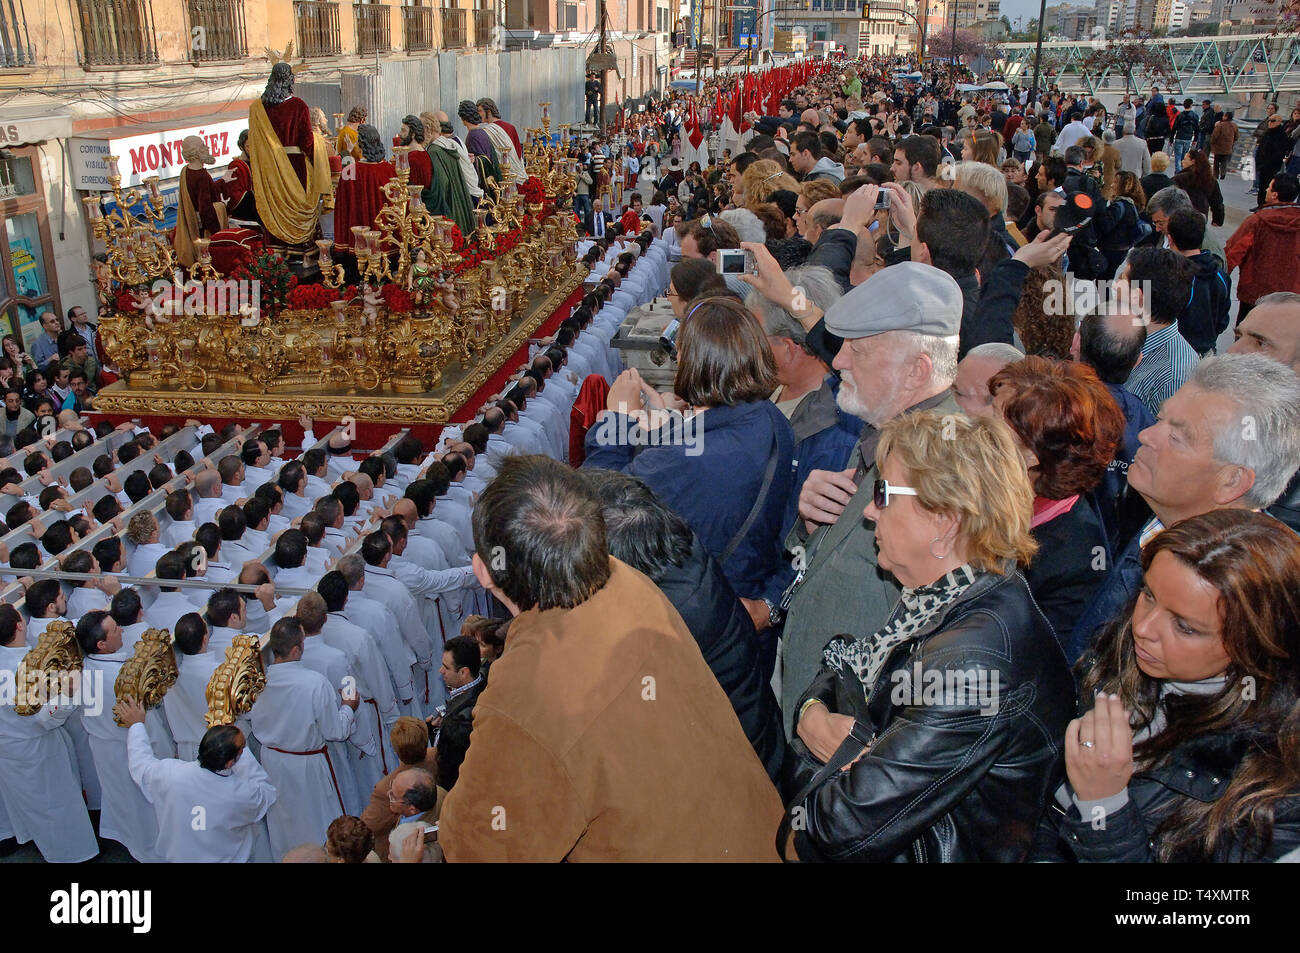 Holy Week. Brotherhood of The Last Supper. Malaga. Costa del Sol. Region of Andalusia. Spain. Europe - Stock Image